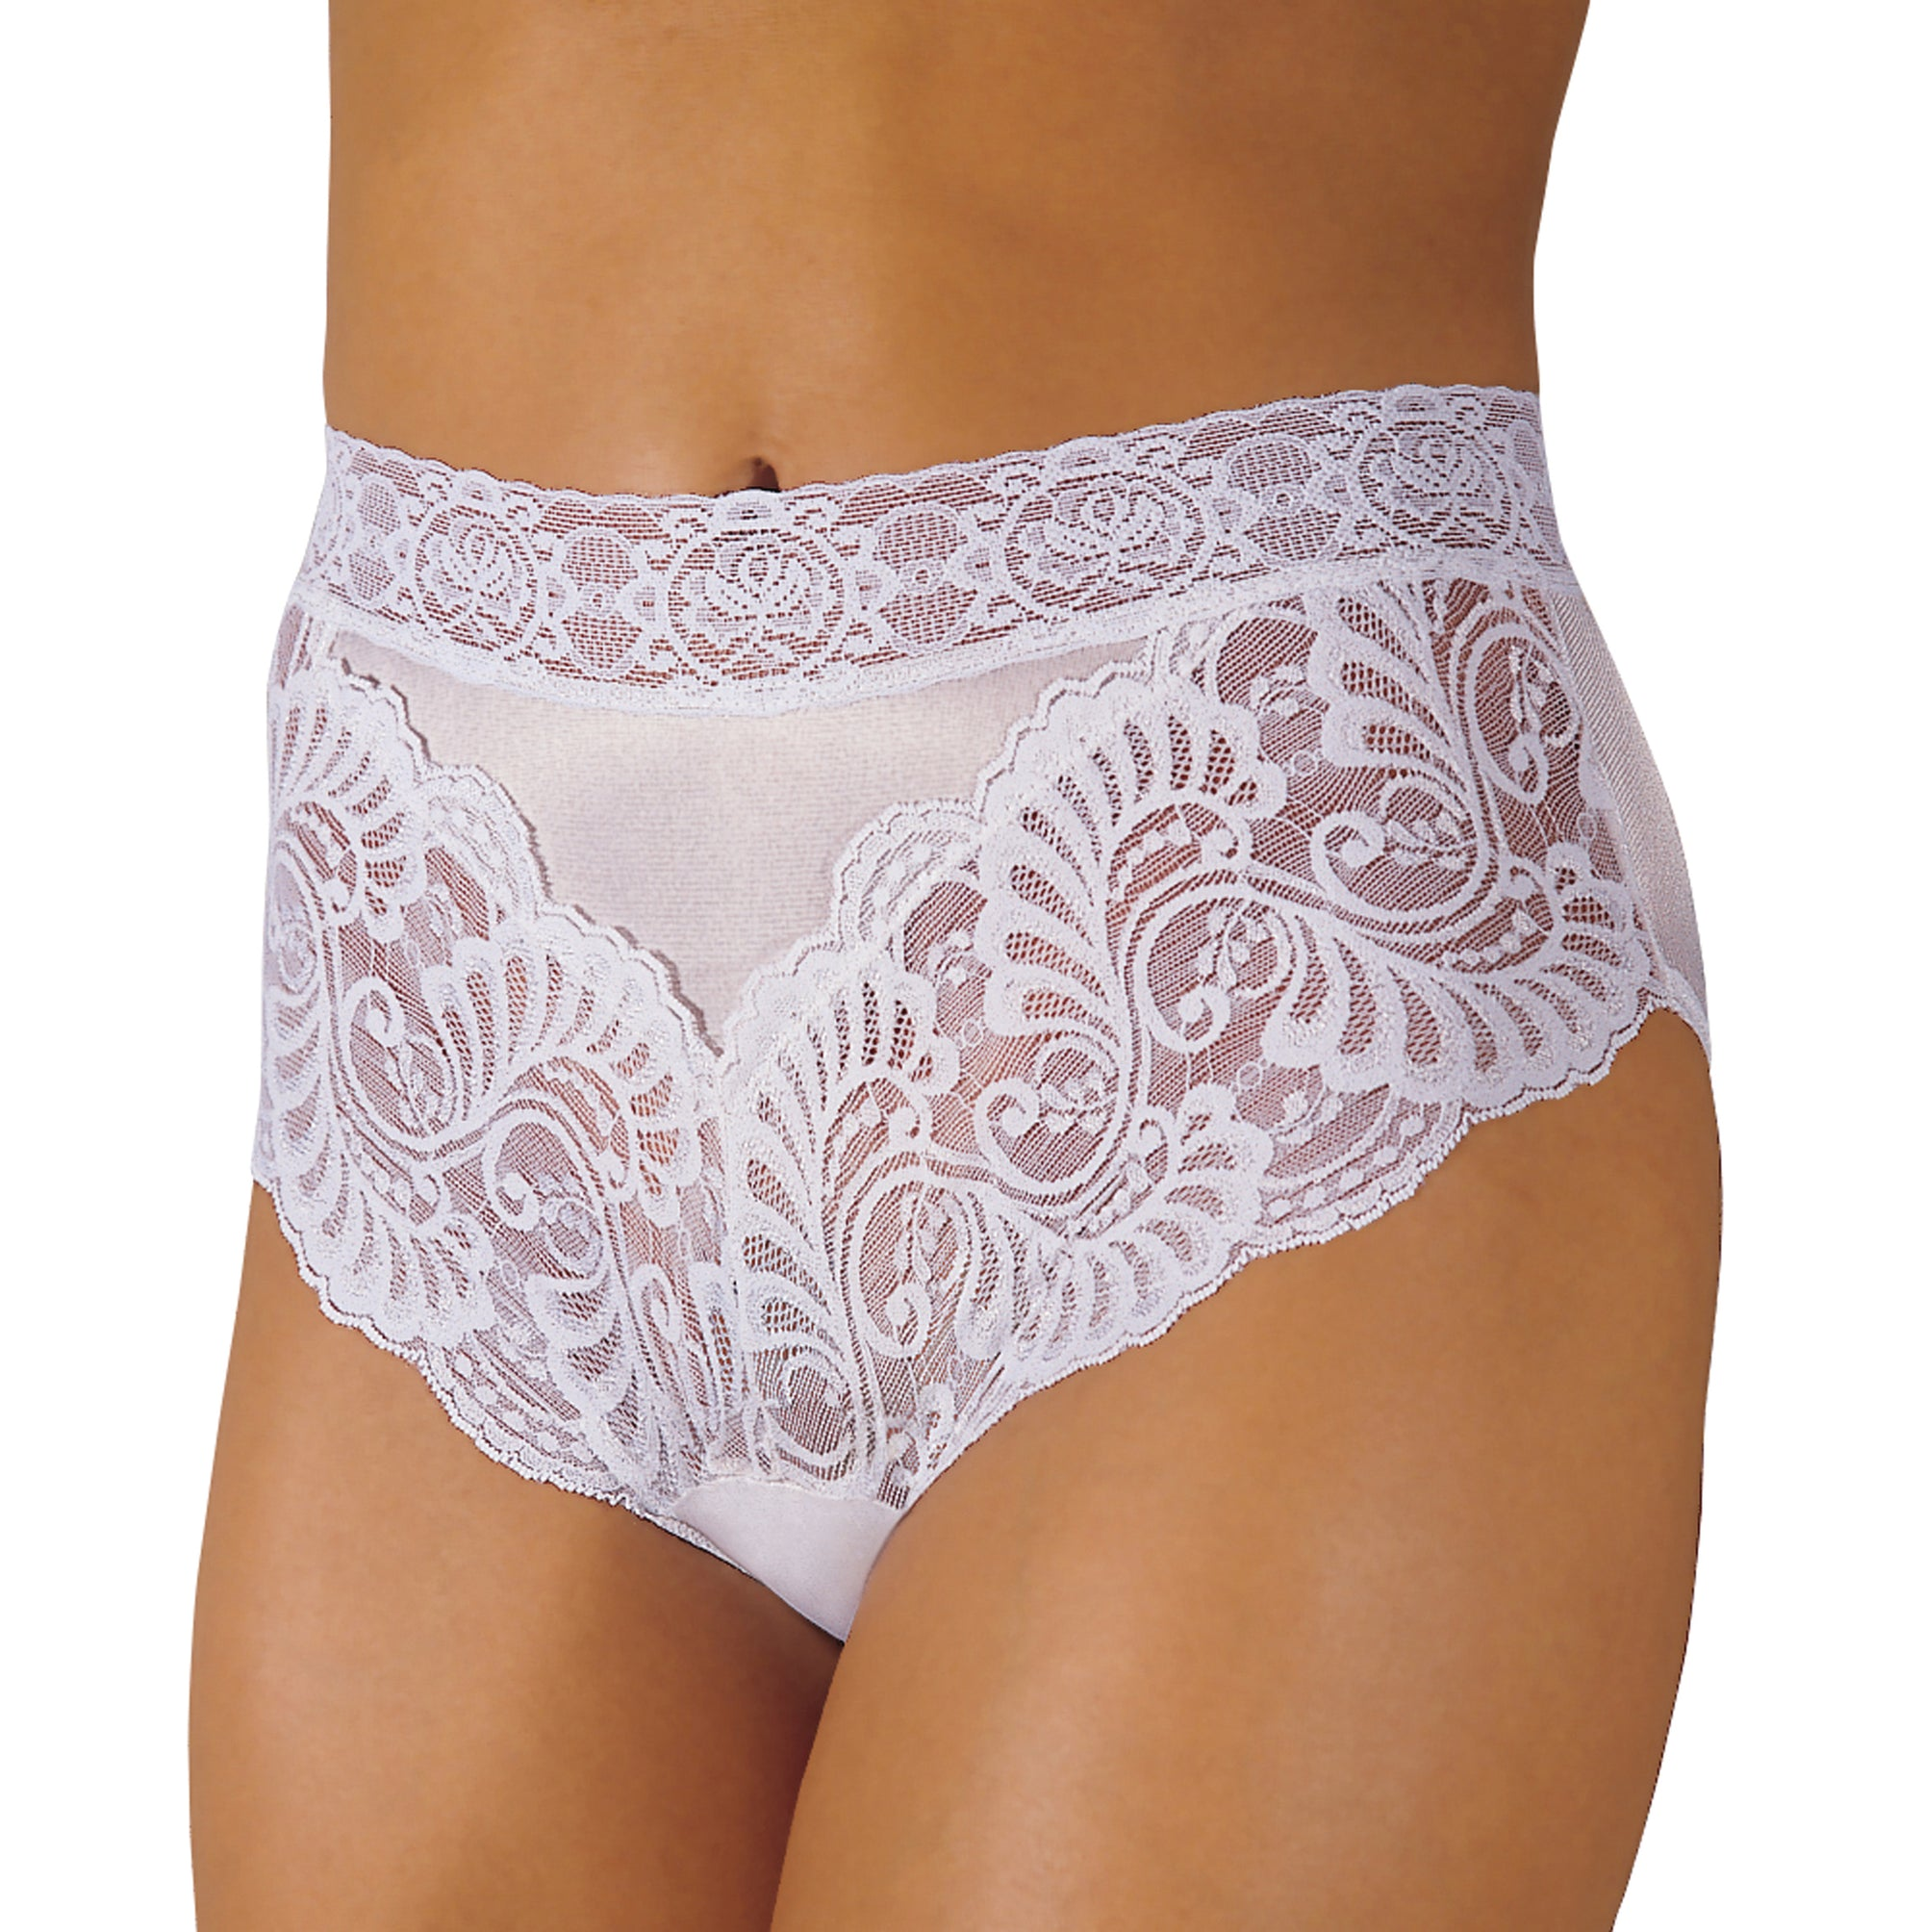 Reusable Female Lace Trim Incontinence Panty